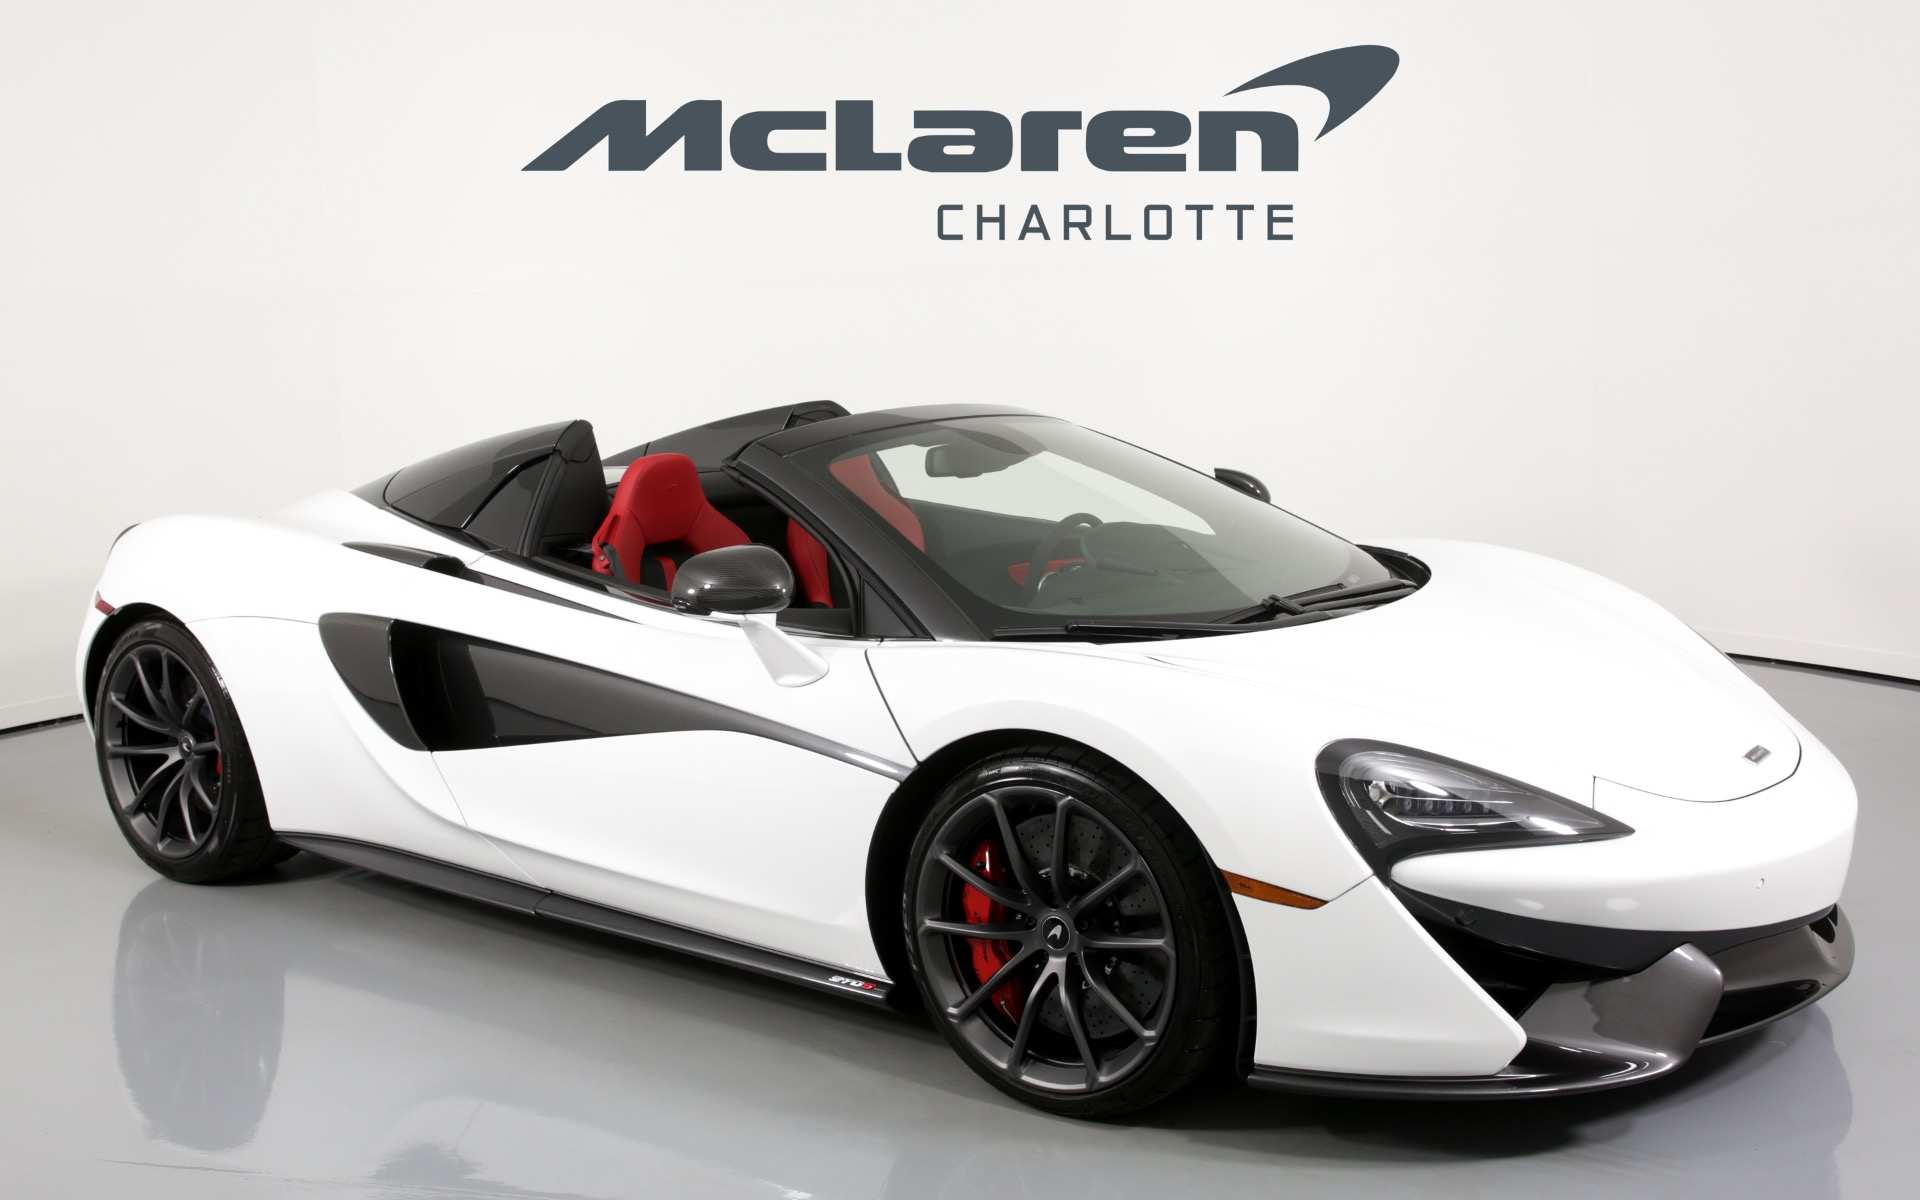 81 The 2019 Mclaren 570S Spider Price And Release Date